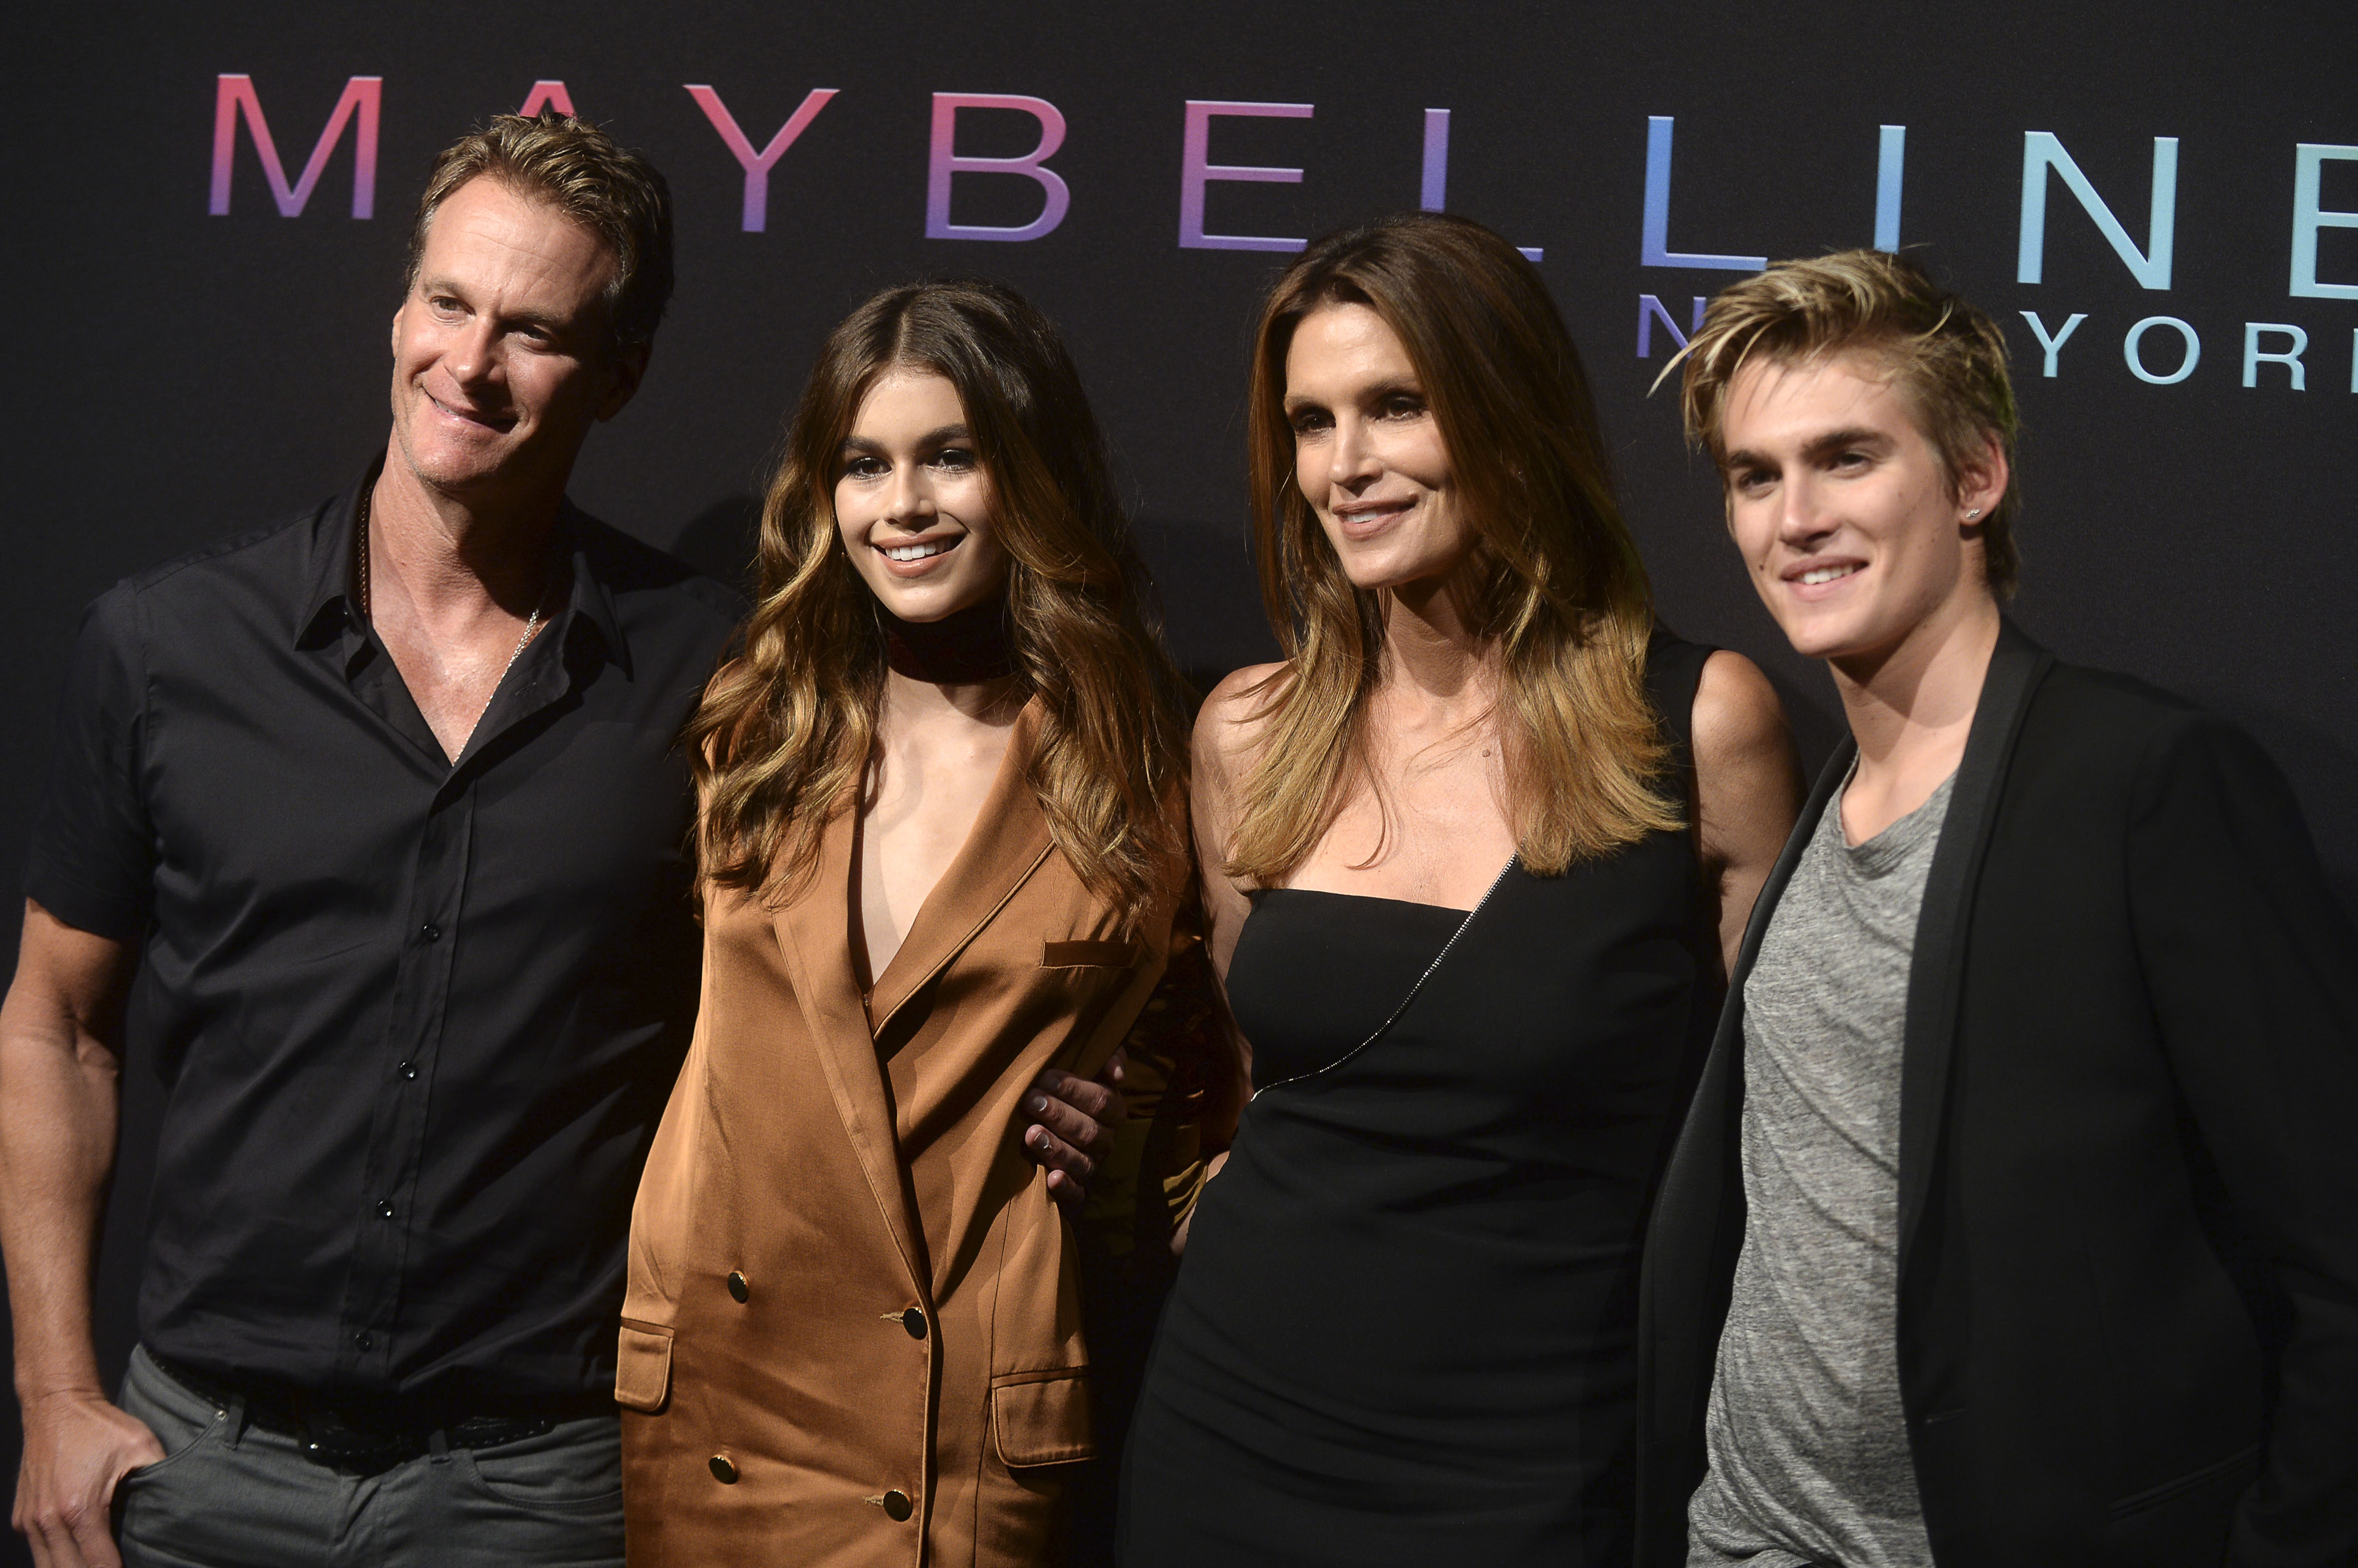 Maybelline New York Celebrates NYFW  Featuring: Rande Gerber, Kaia Gerber, Cindy Crawford, Presley Gerber Where: New York, New York, United States When: 08 Sep 2016 Credit: Dennis Van Tine/Future Image/WENN.com  **Not available for publication in Germany, Poland, Russia, Hungary, Slovenia, Czech Republic, Serbia, Croatia, Slovakia**